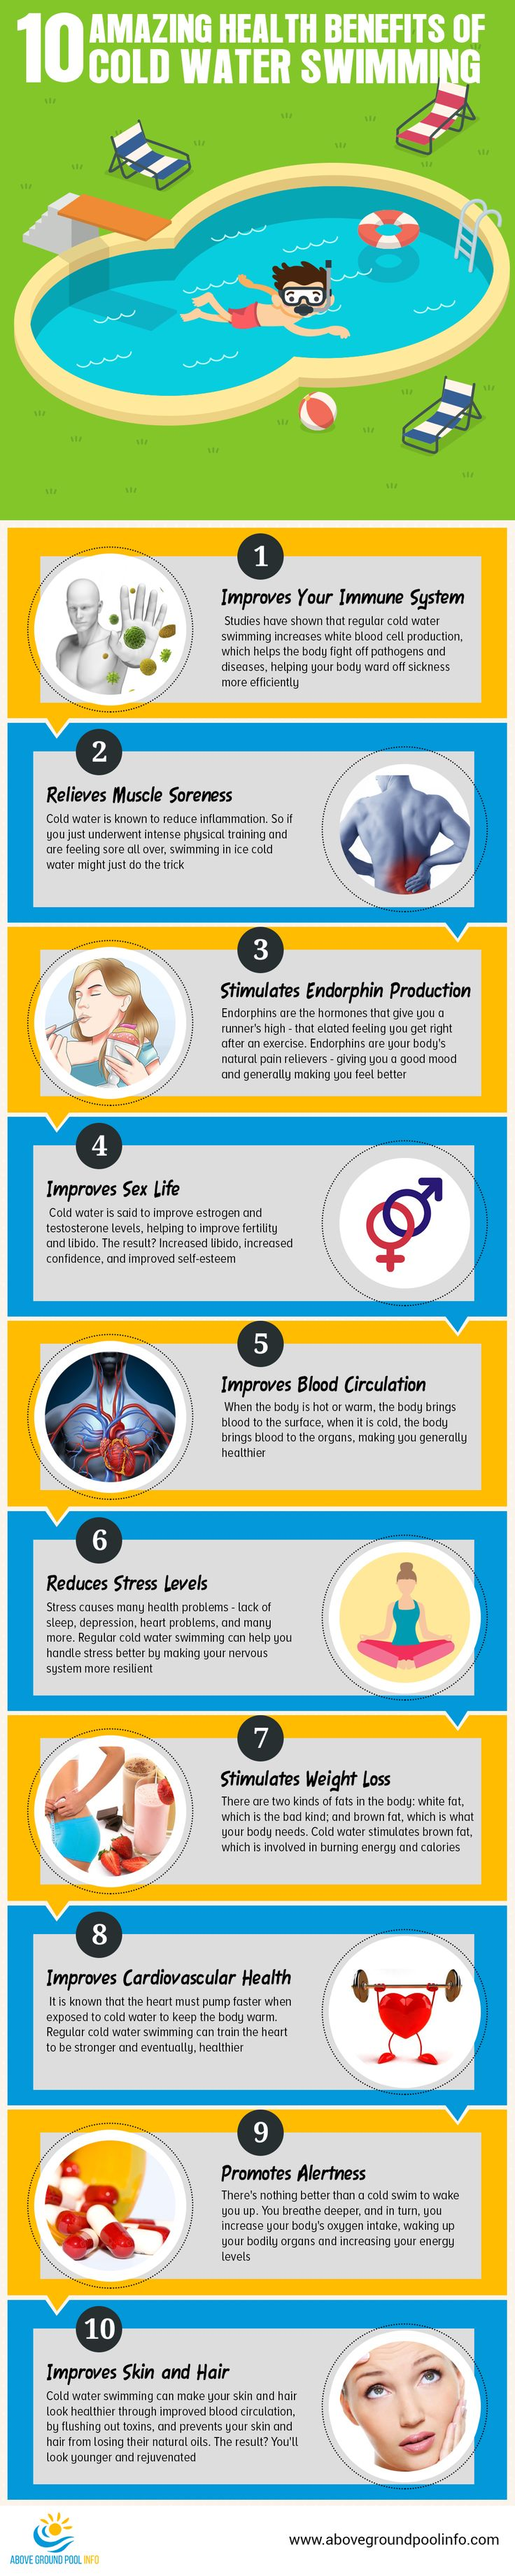 10 Amazing Health Benefits of Cold Water Swimming {Infographic}